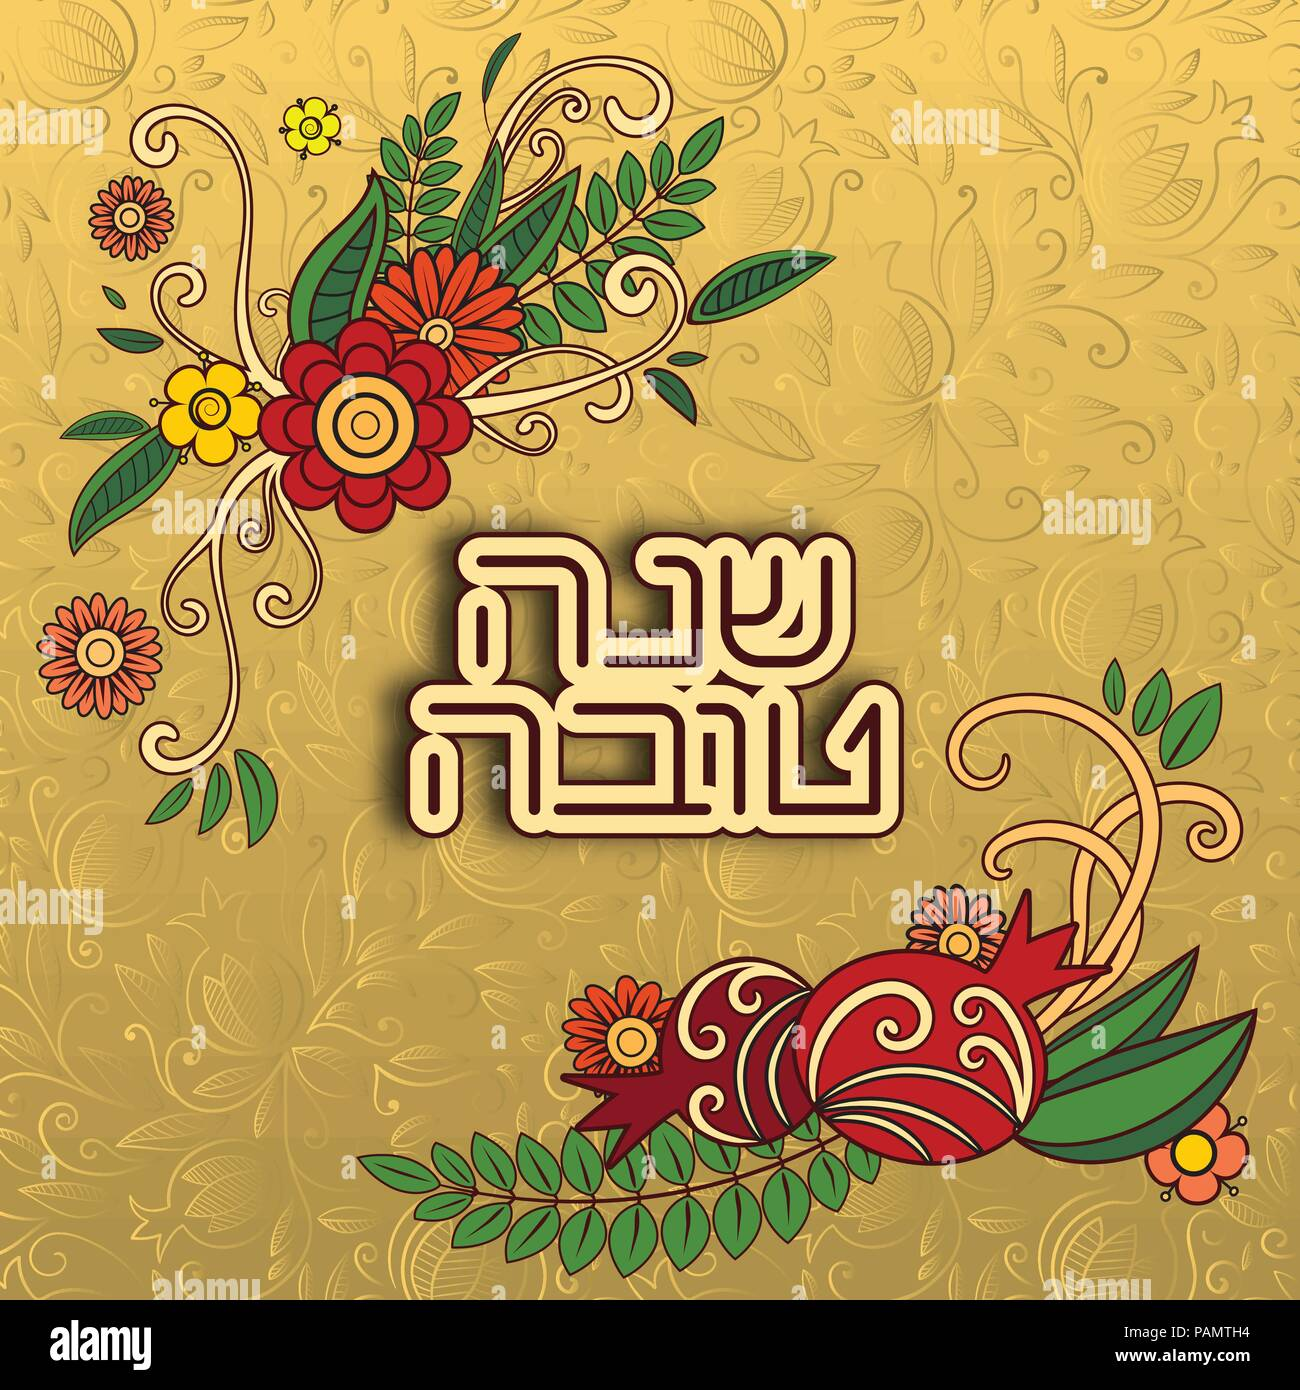 Rosh Hashanah Jewish New Year Greeting Card With Flowers And